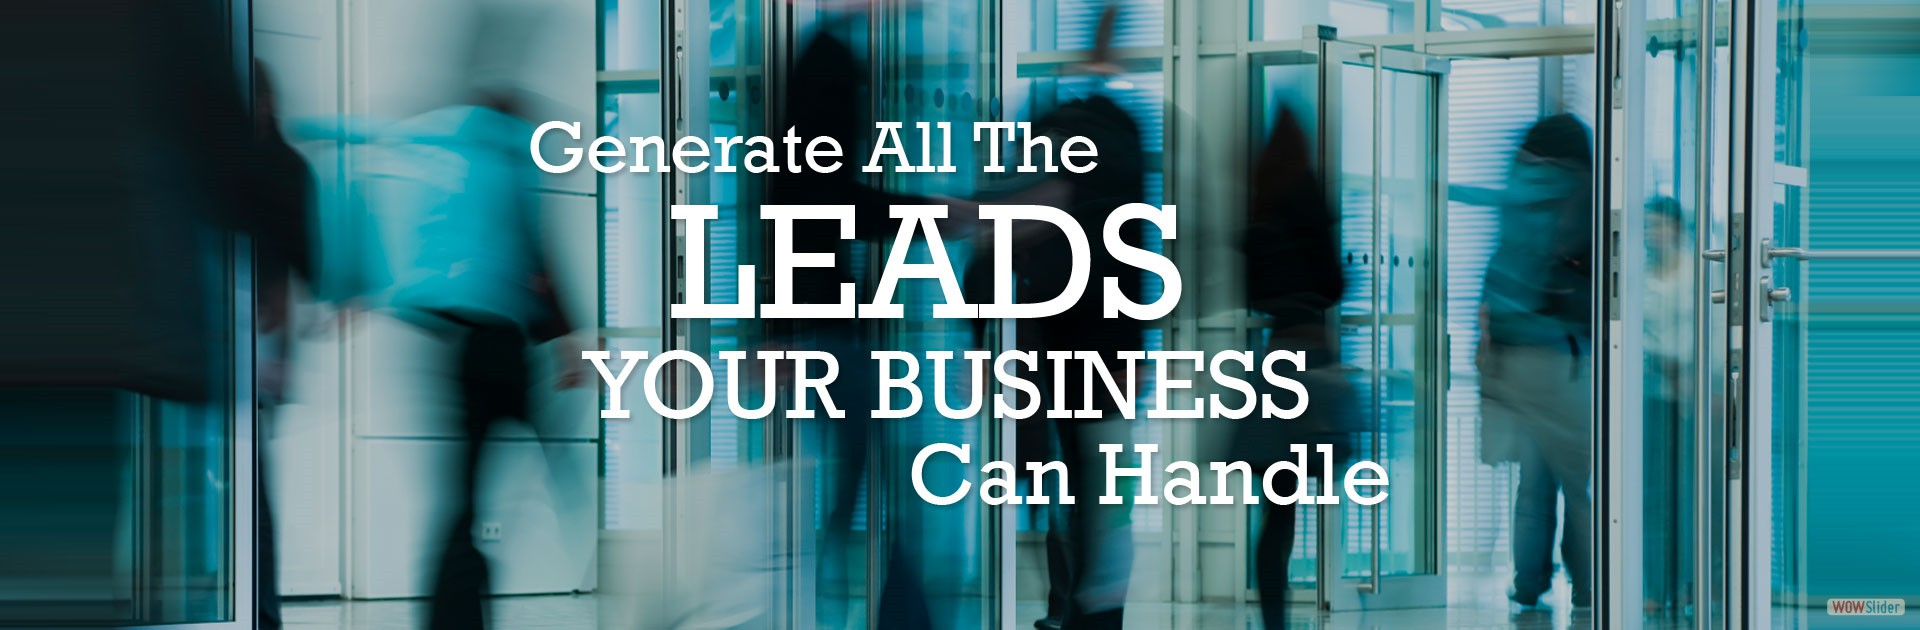 Generate All The Leads Your Business Can Handle